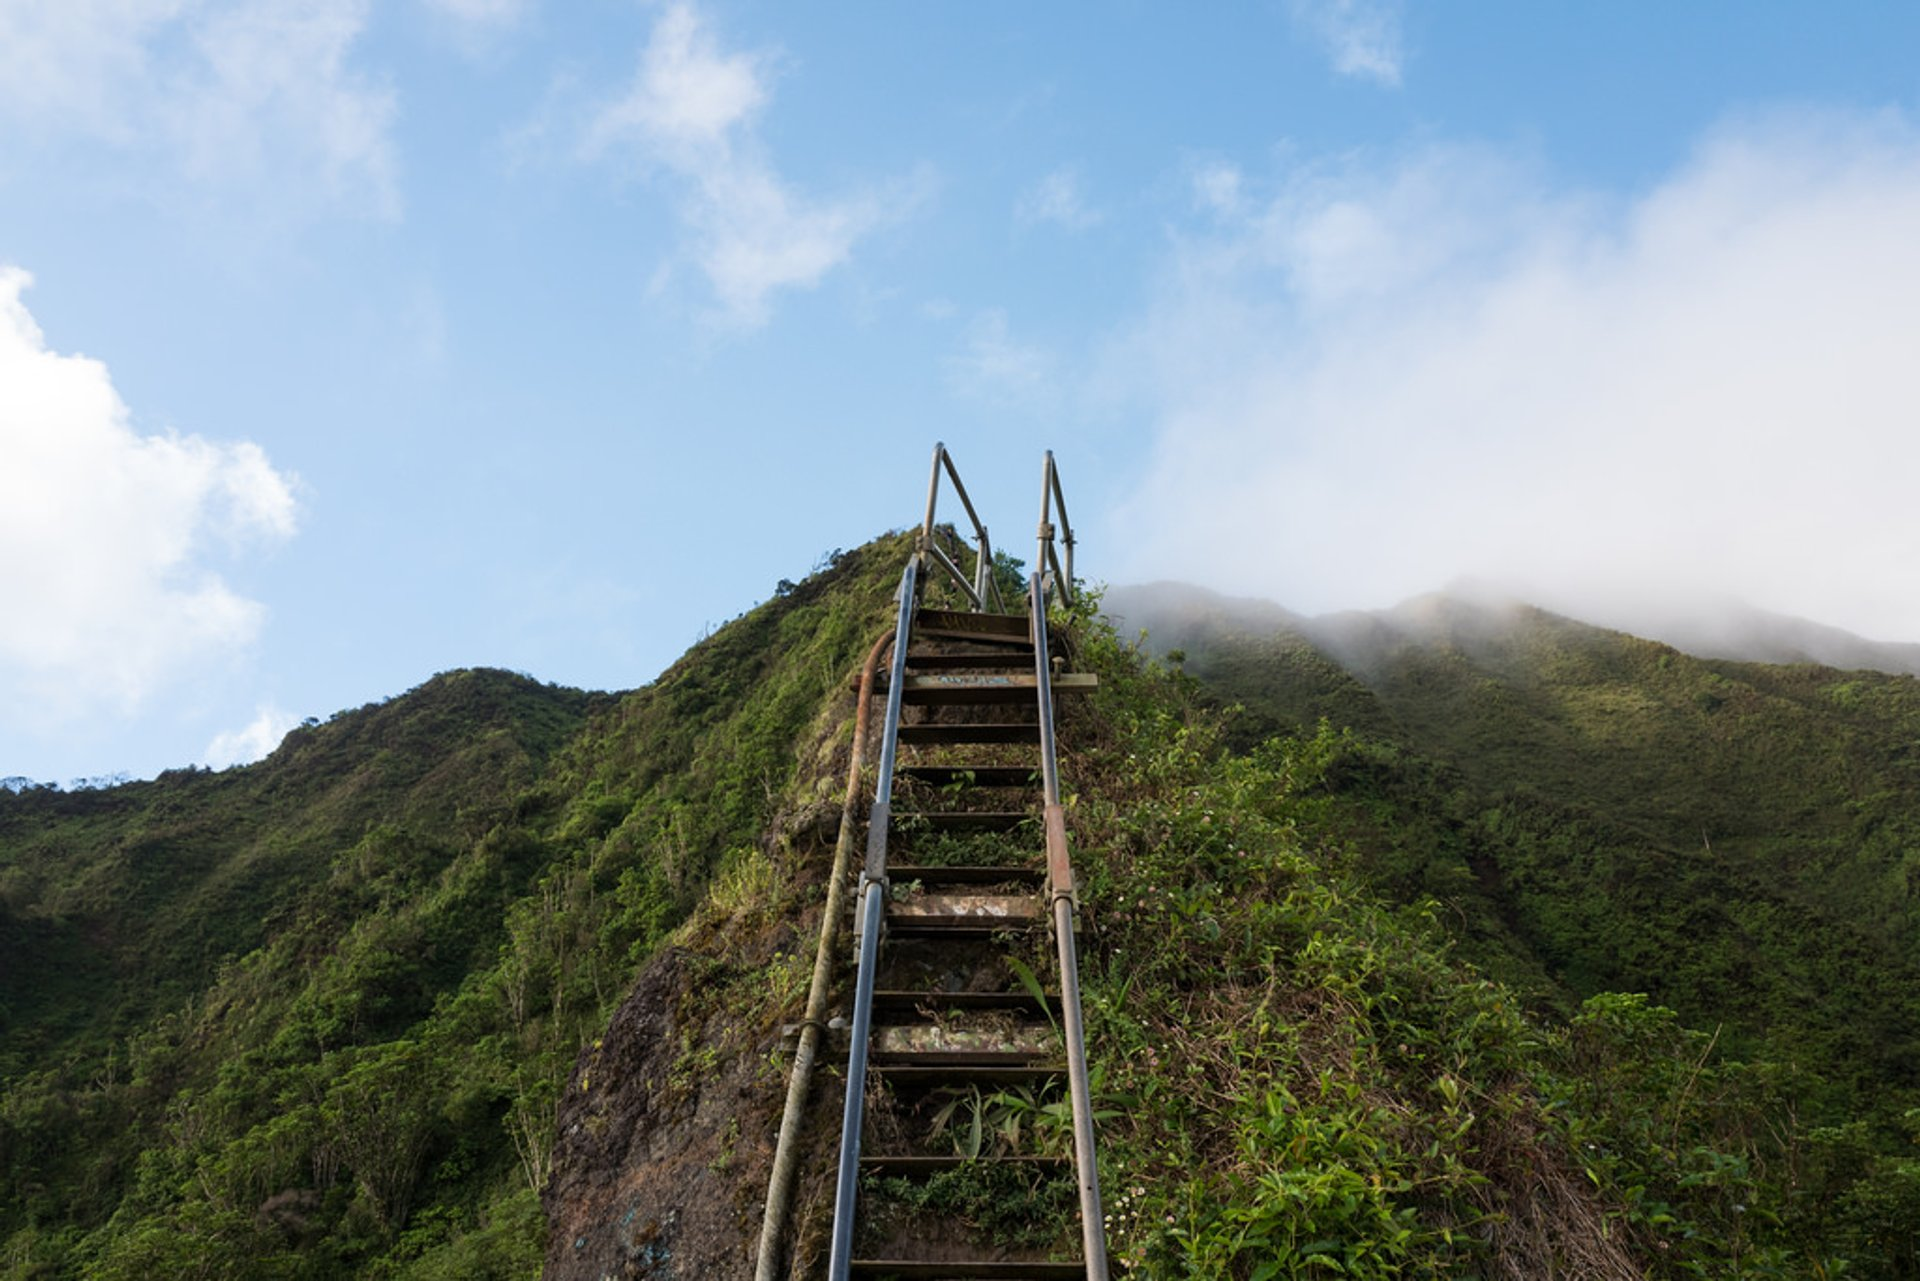 Moanalua Valley Trail to Haiku Stairs in Hawaii 2020 - Best Time